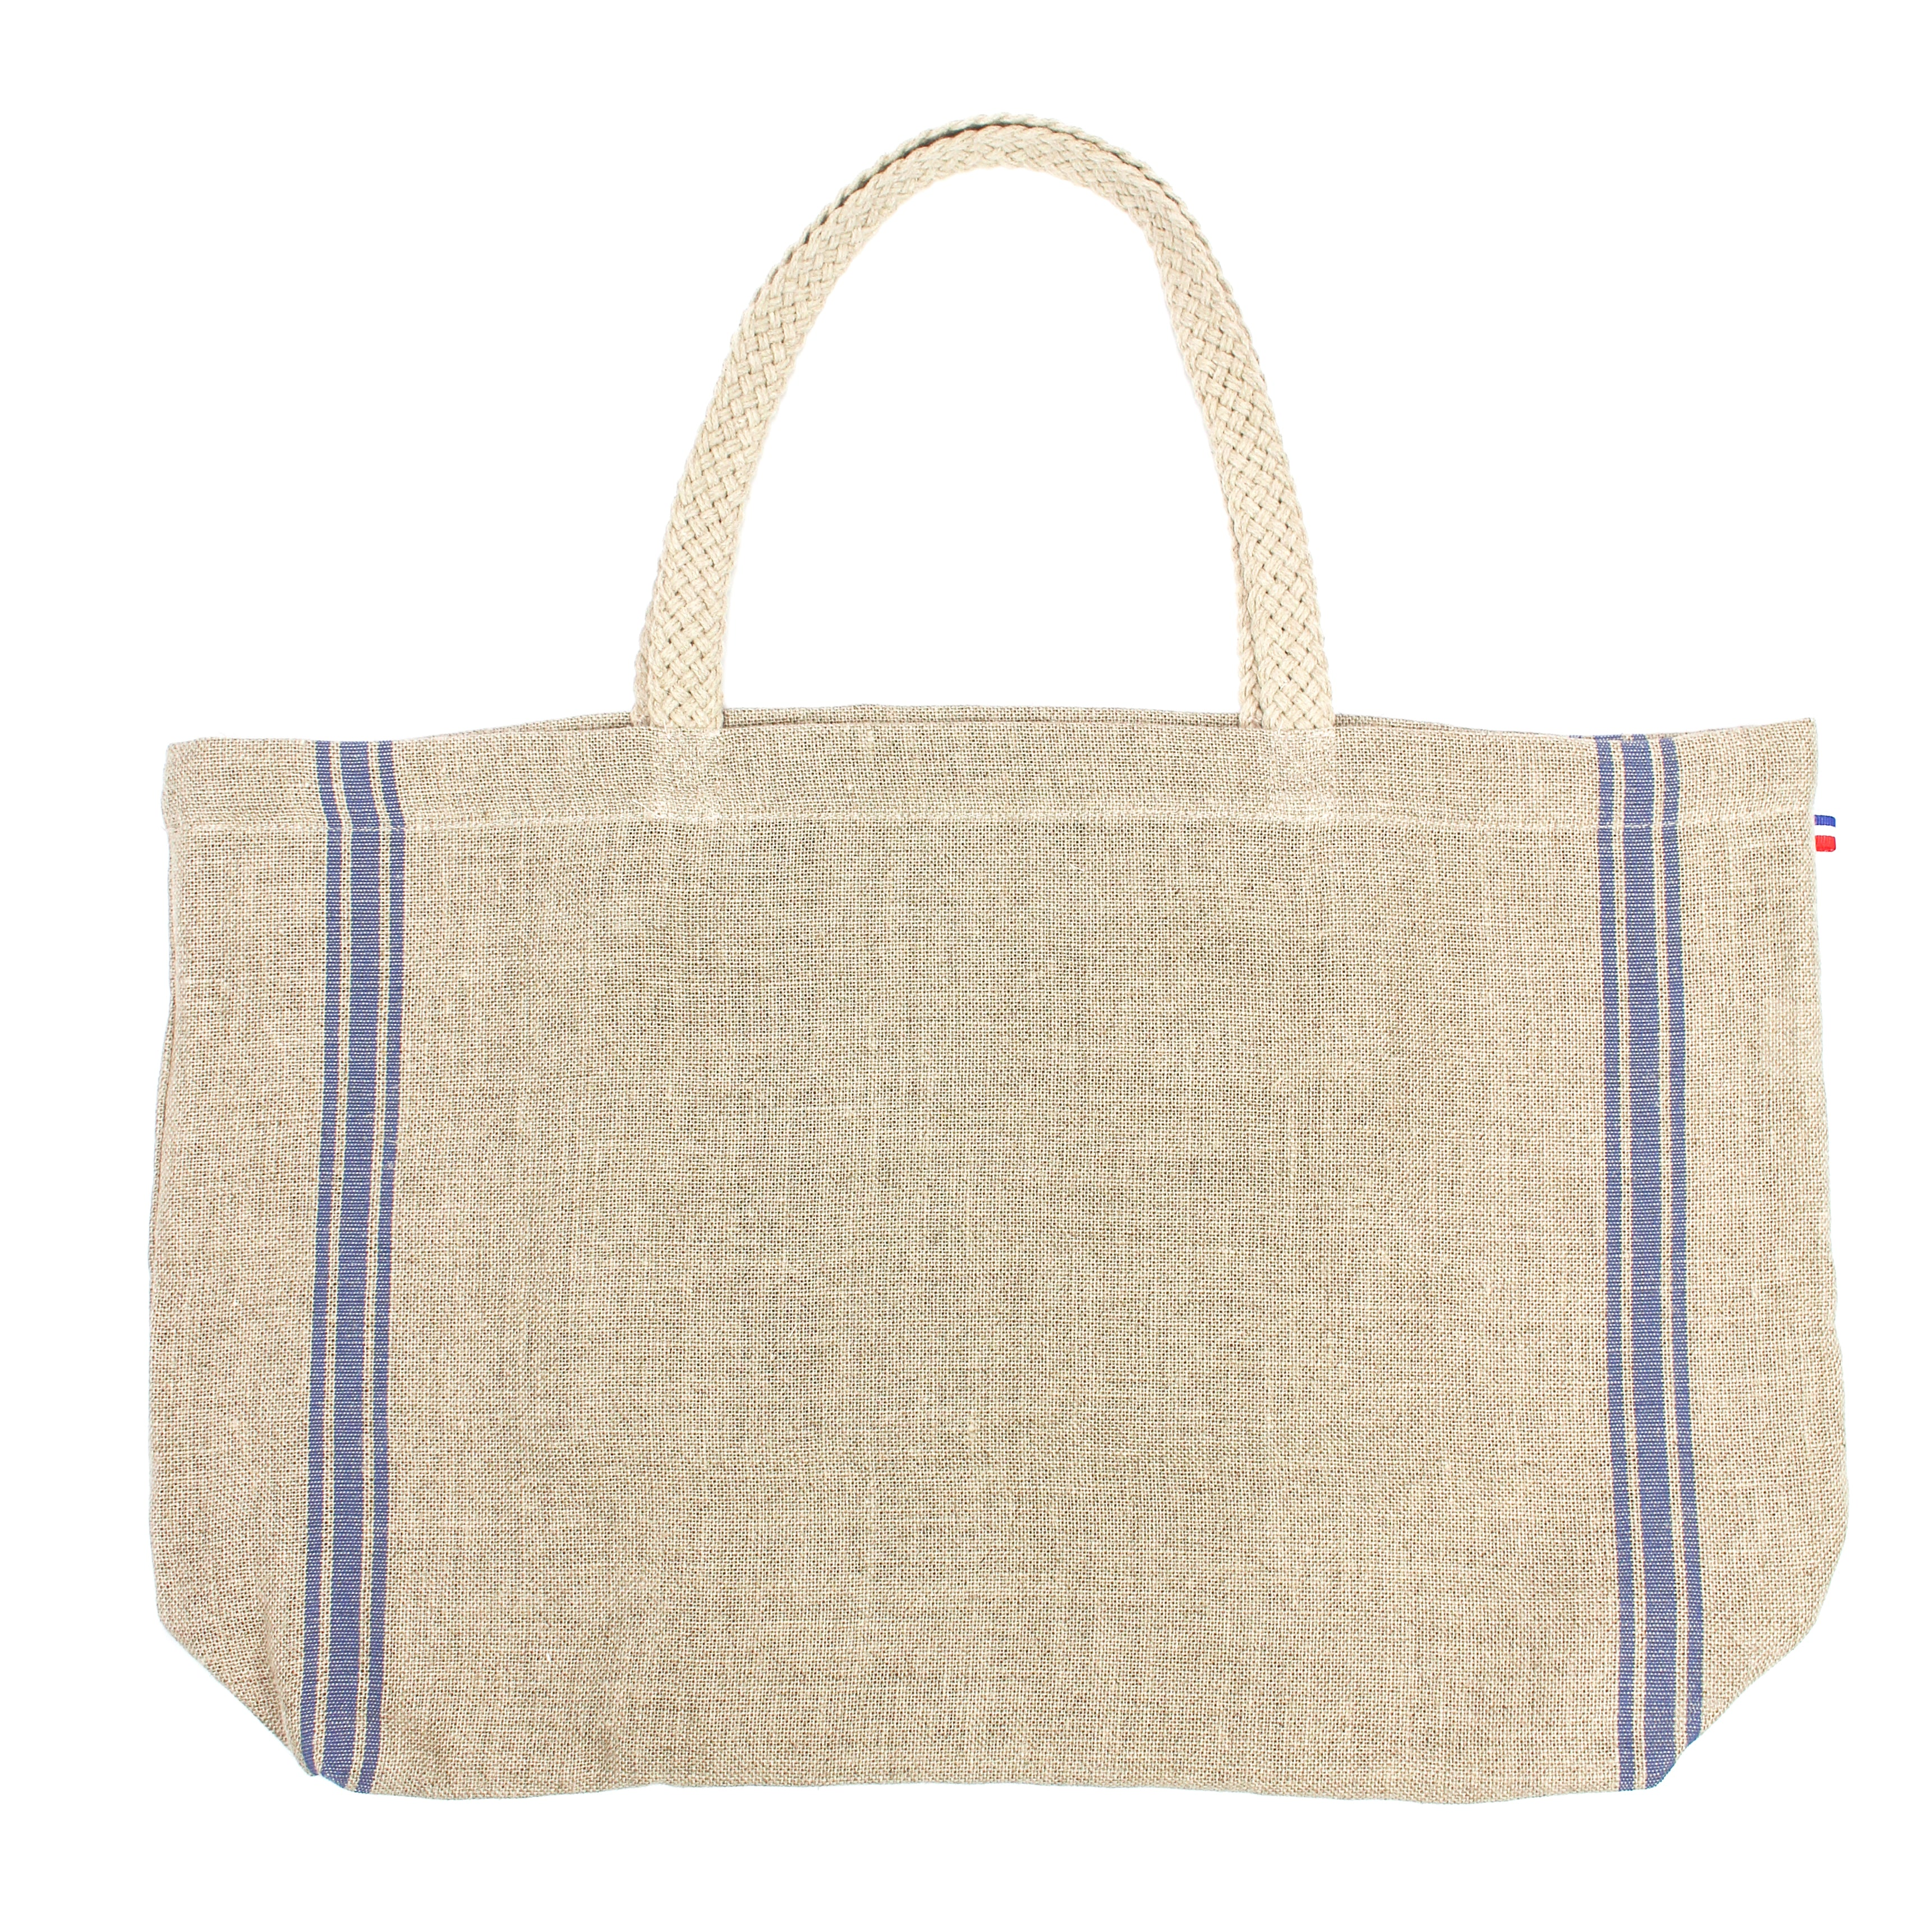 Monogramme Blue Thieffry Linen Shopping Bag with Braided Handle and Inner Zipper Pocket